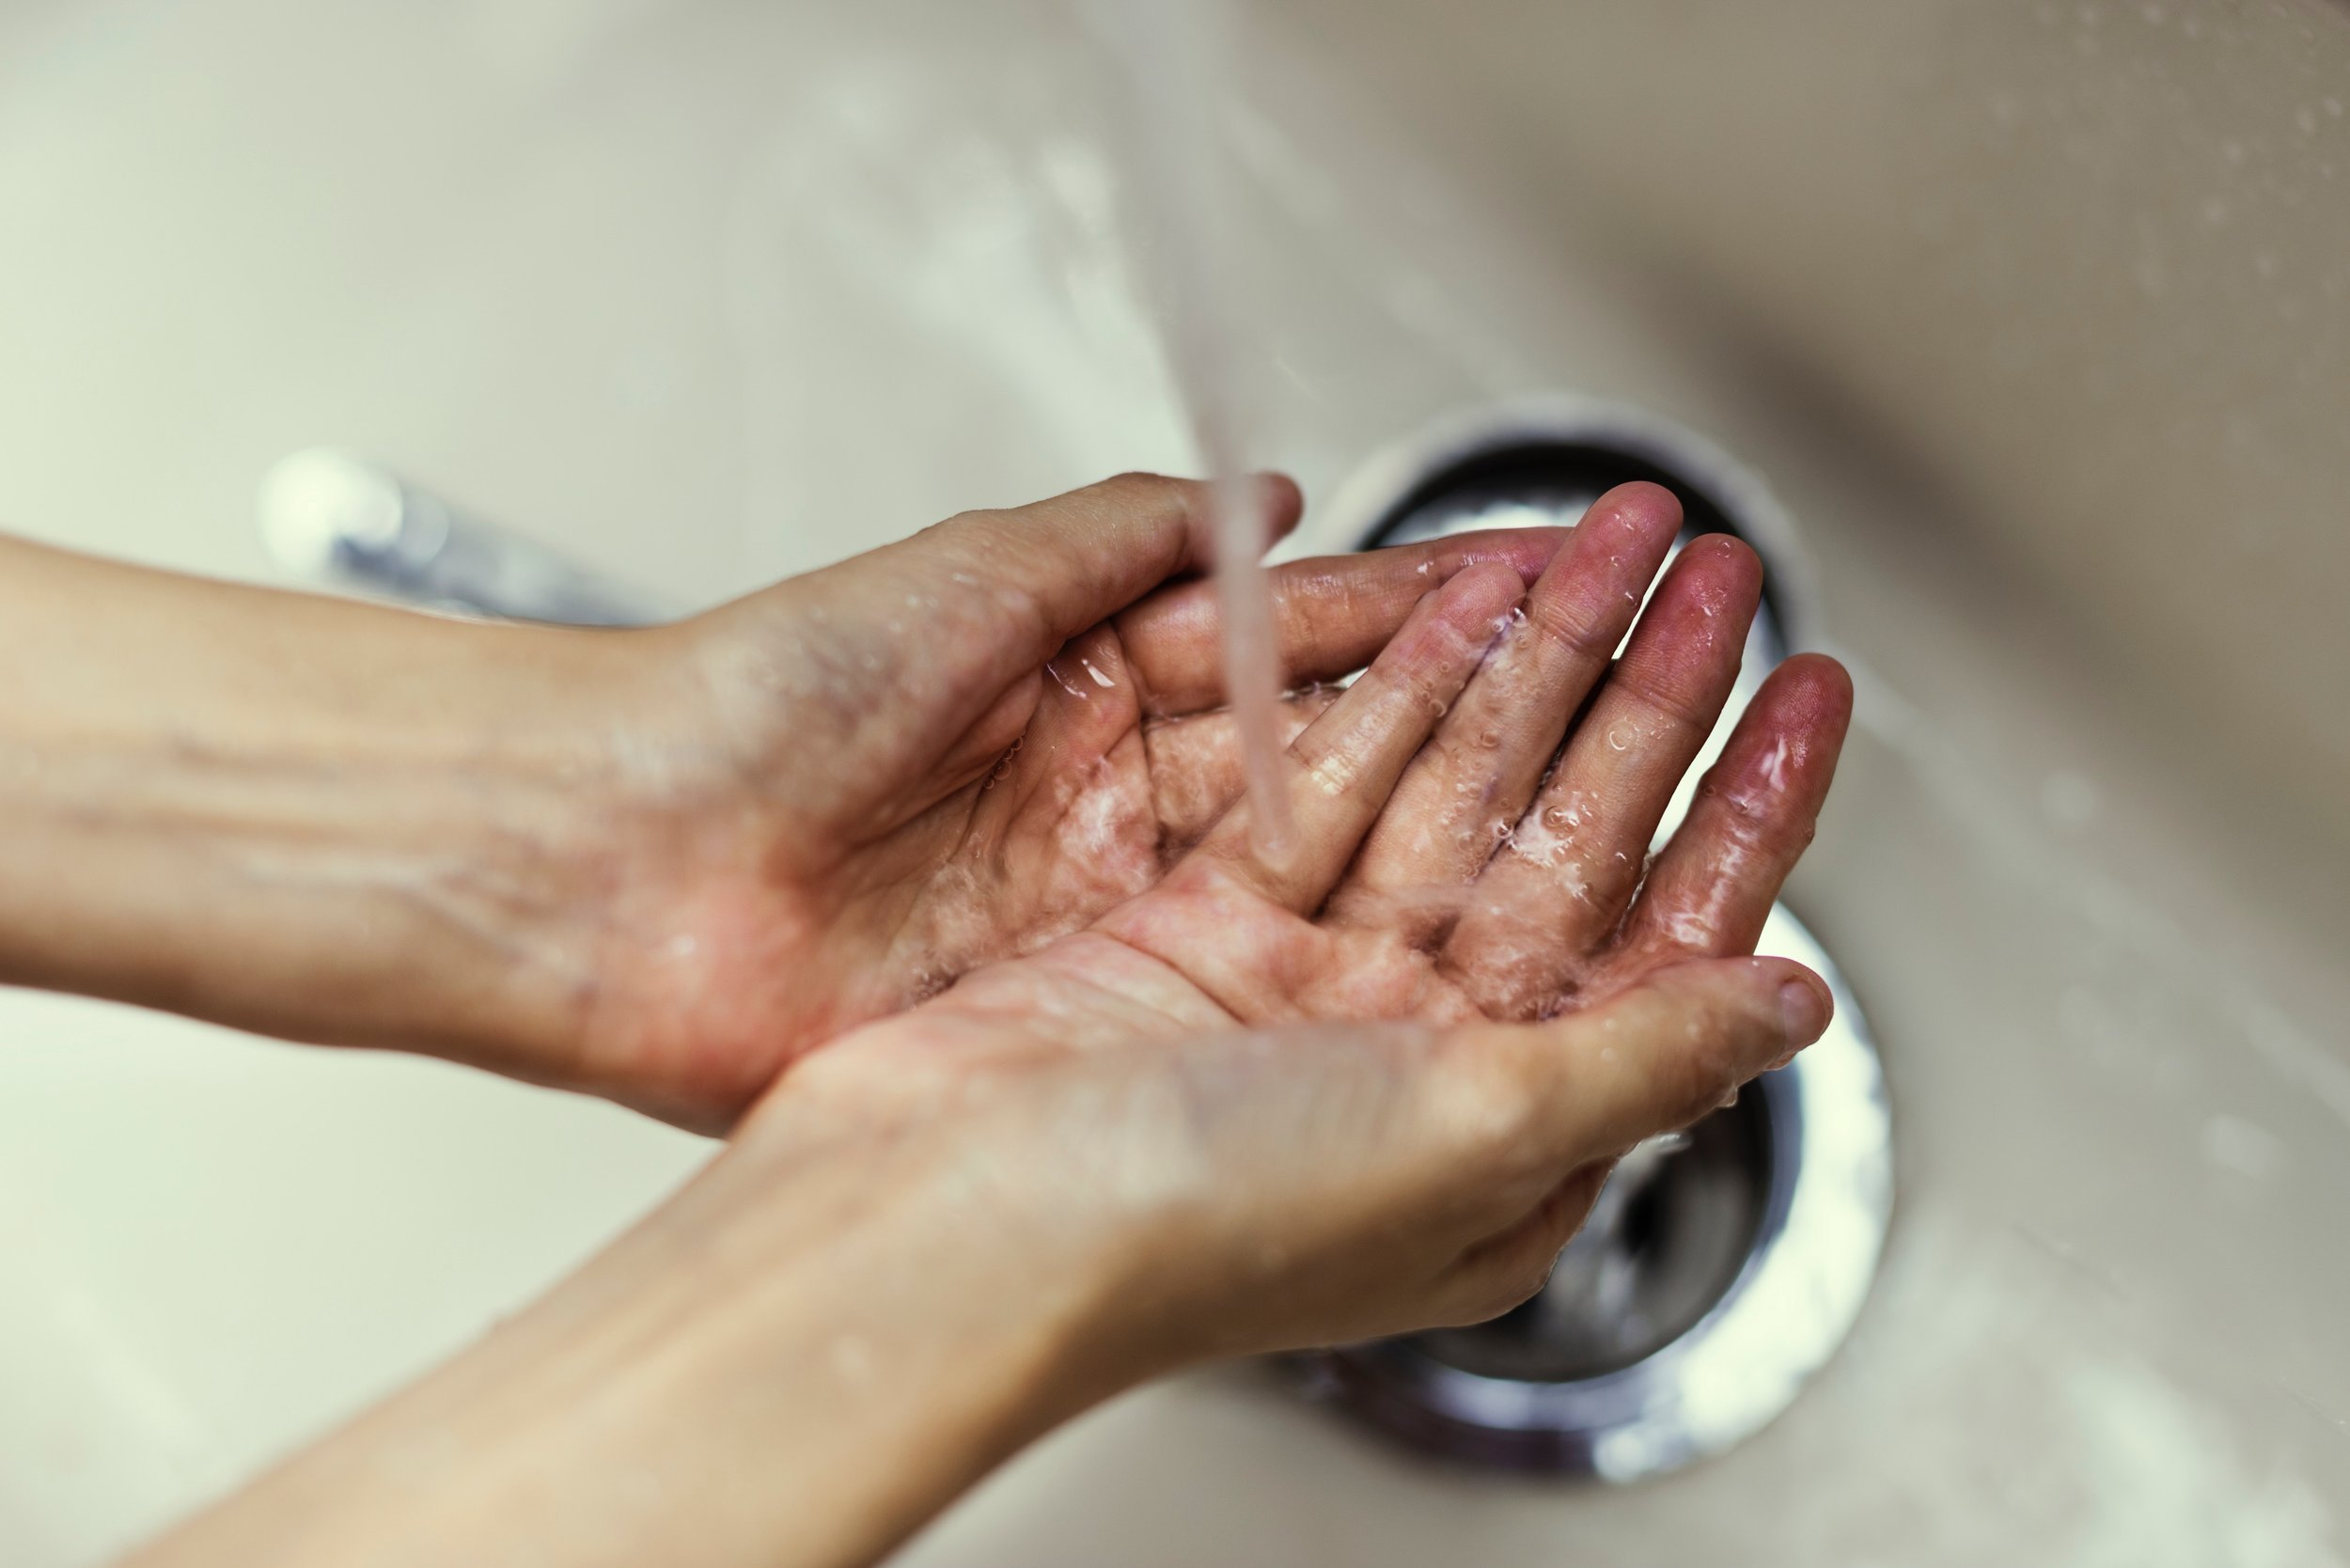 Is it better to use a stand in cleanser while travelling?